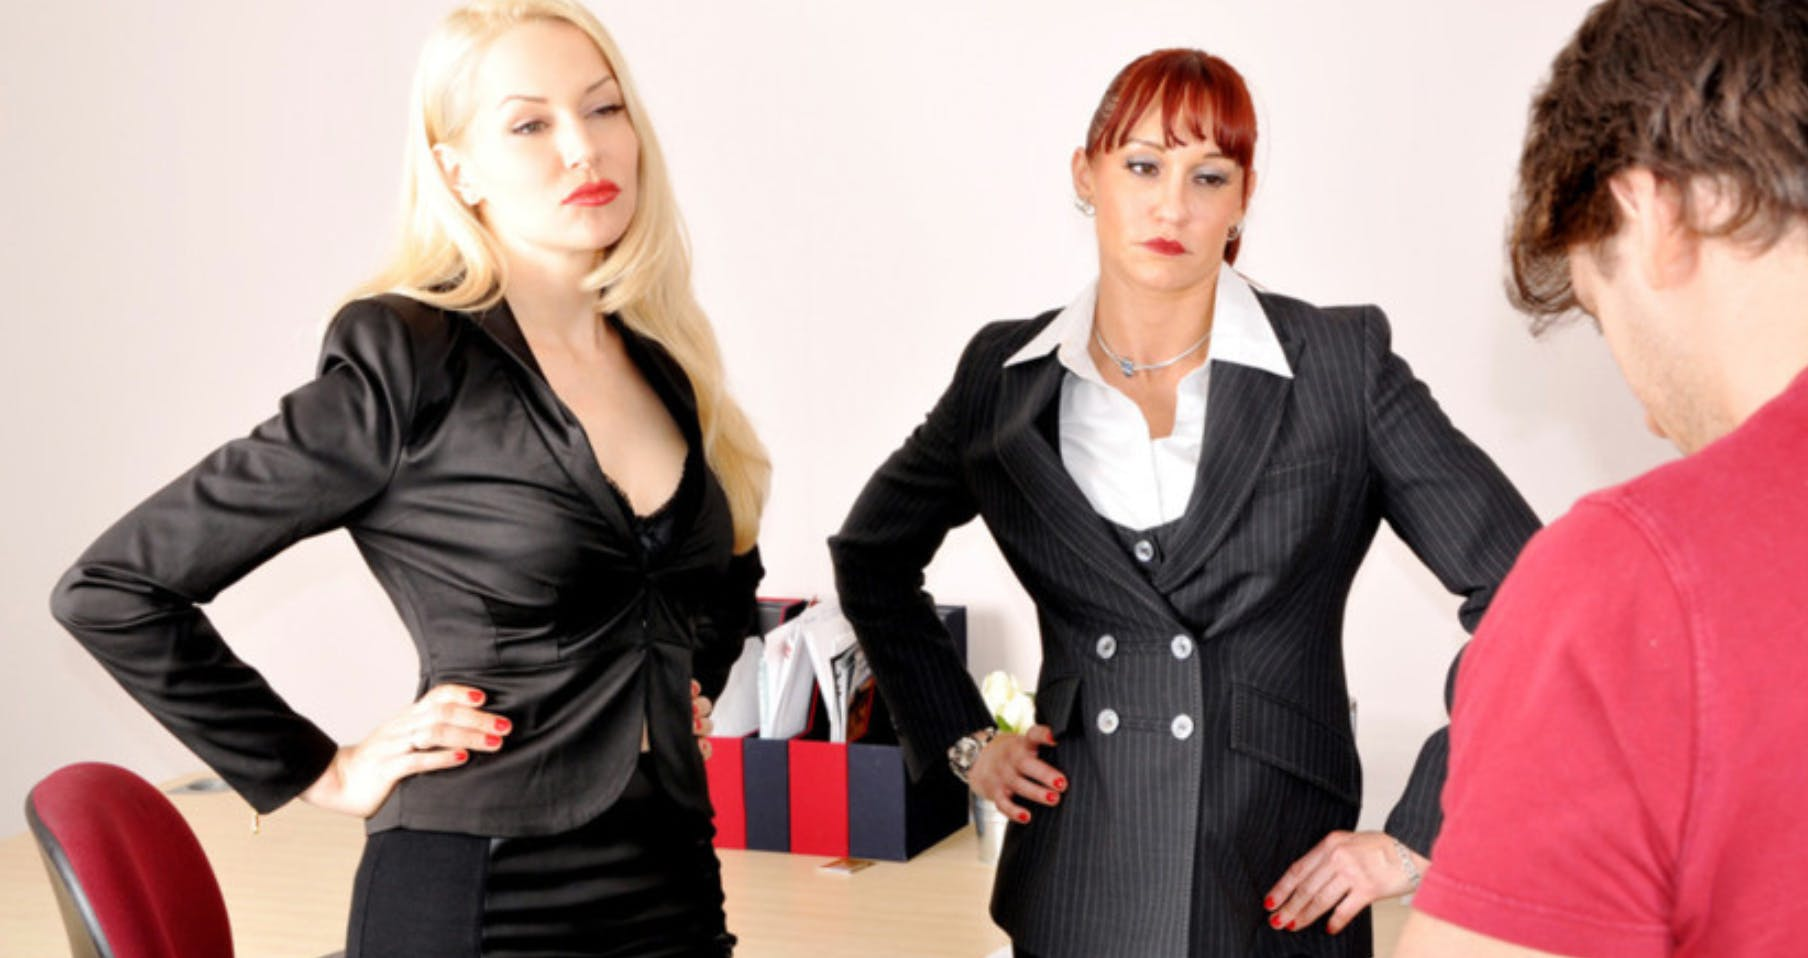 Two women dressed in business attire scowl at a man with their hands on their hips.